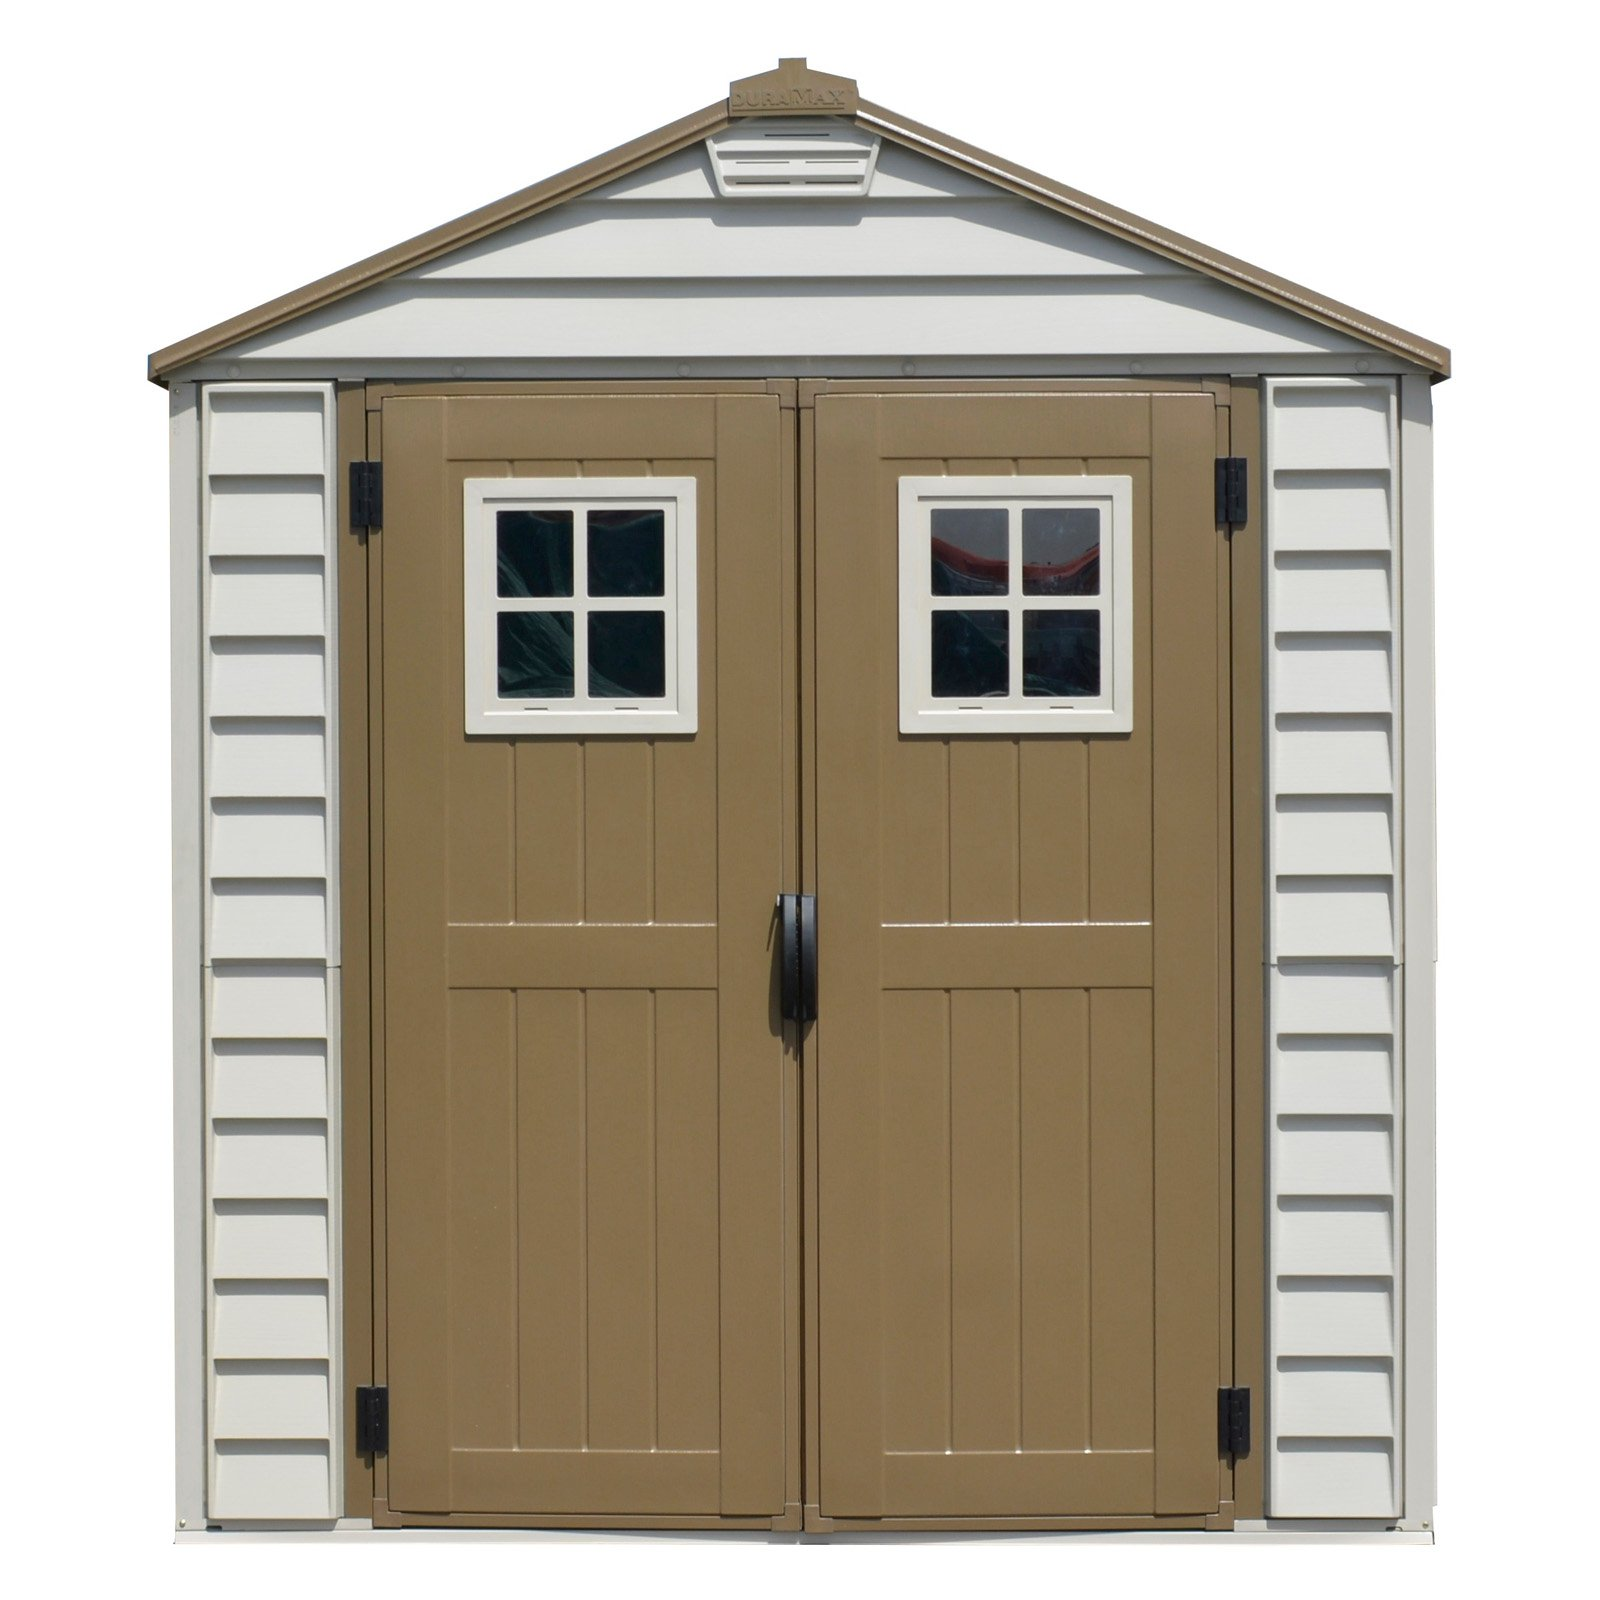 Duramax Building Products StoreMax Vinyl Shed with Foundation